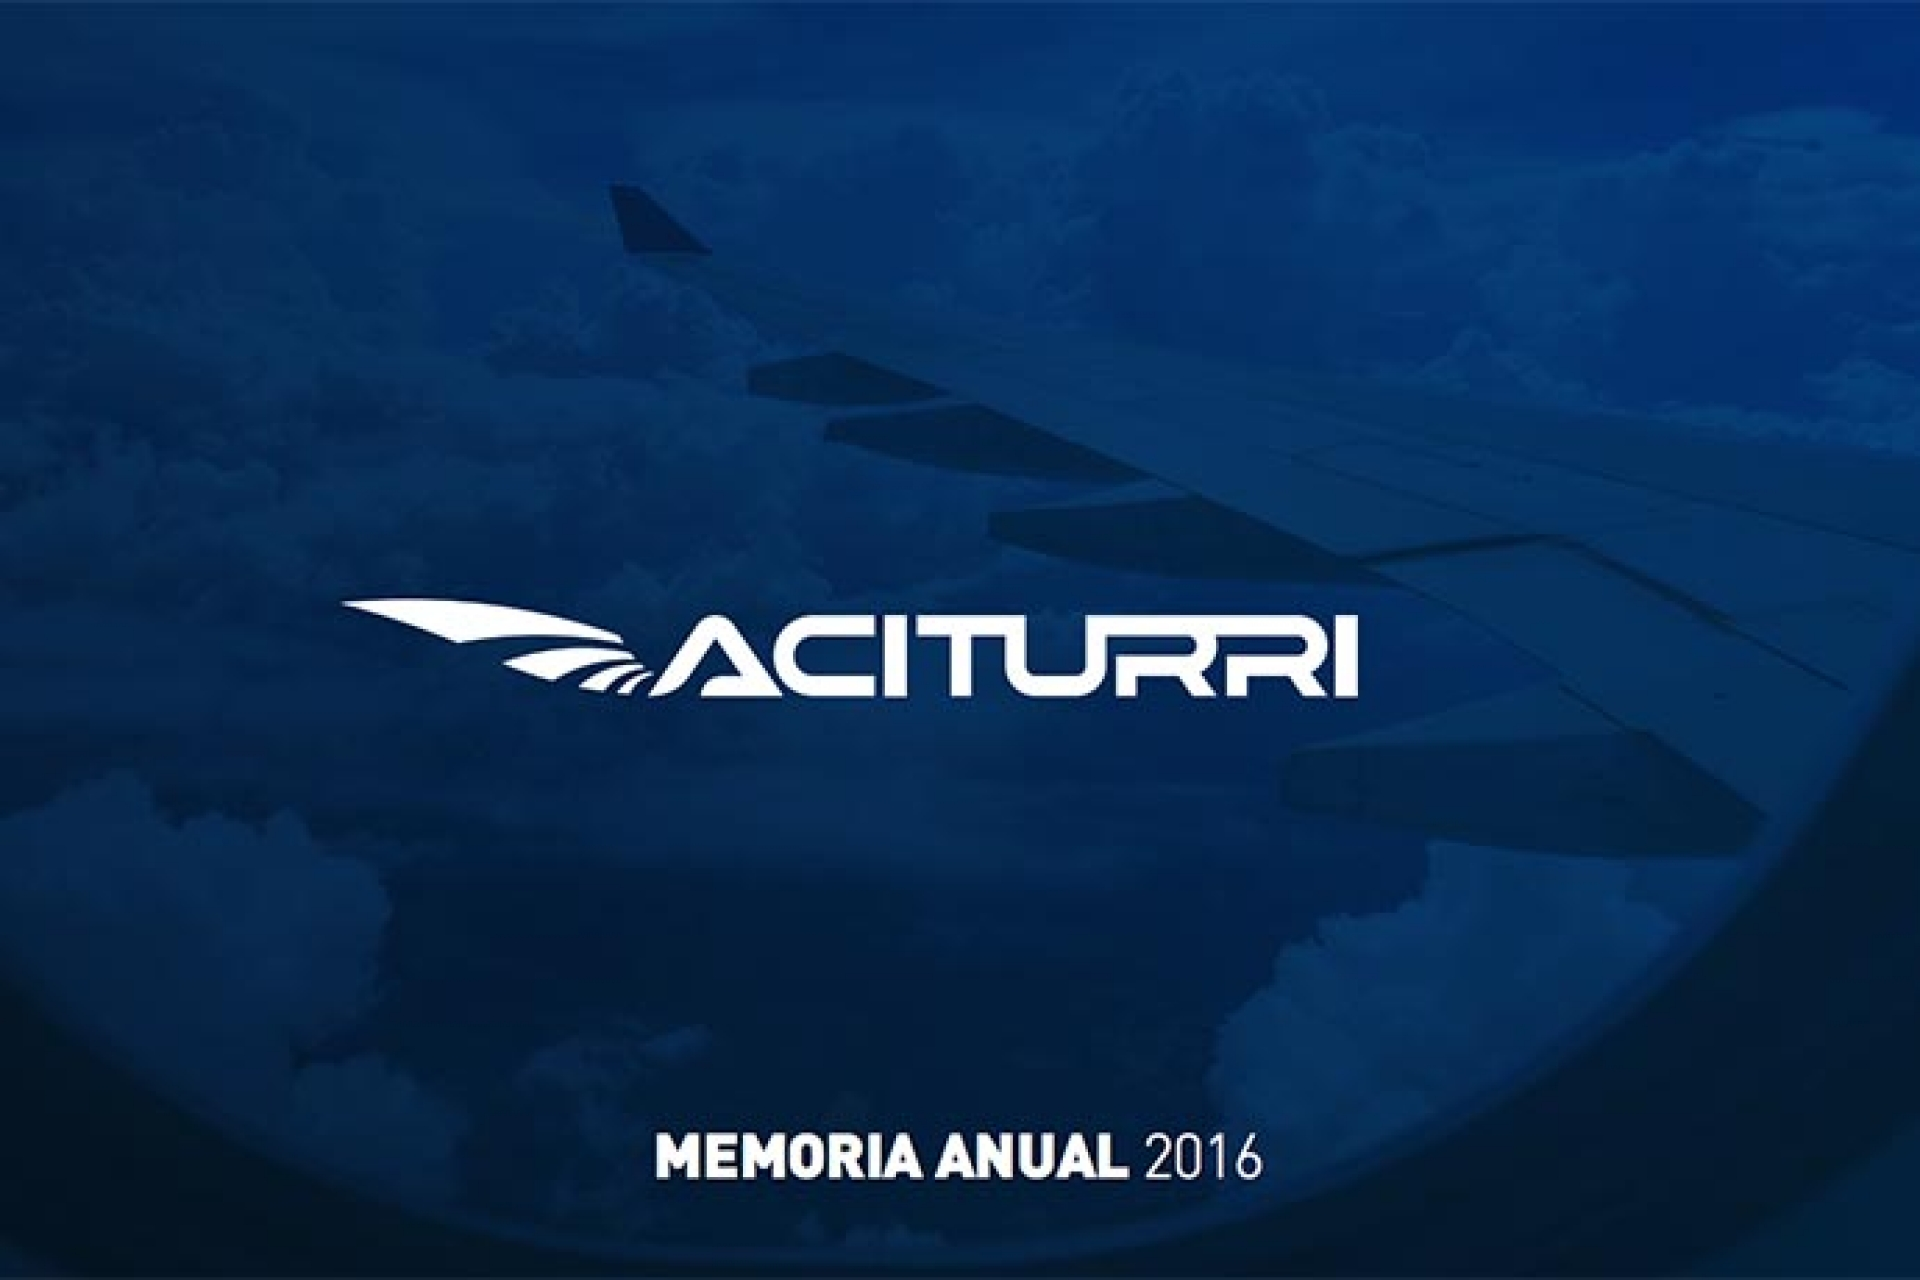 Annual report for Aciturri